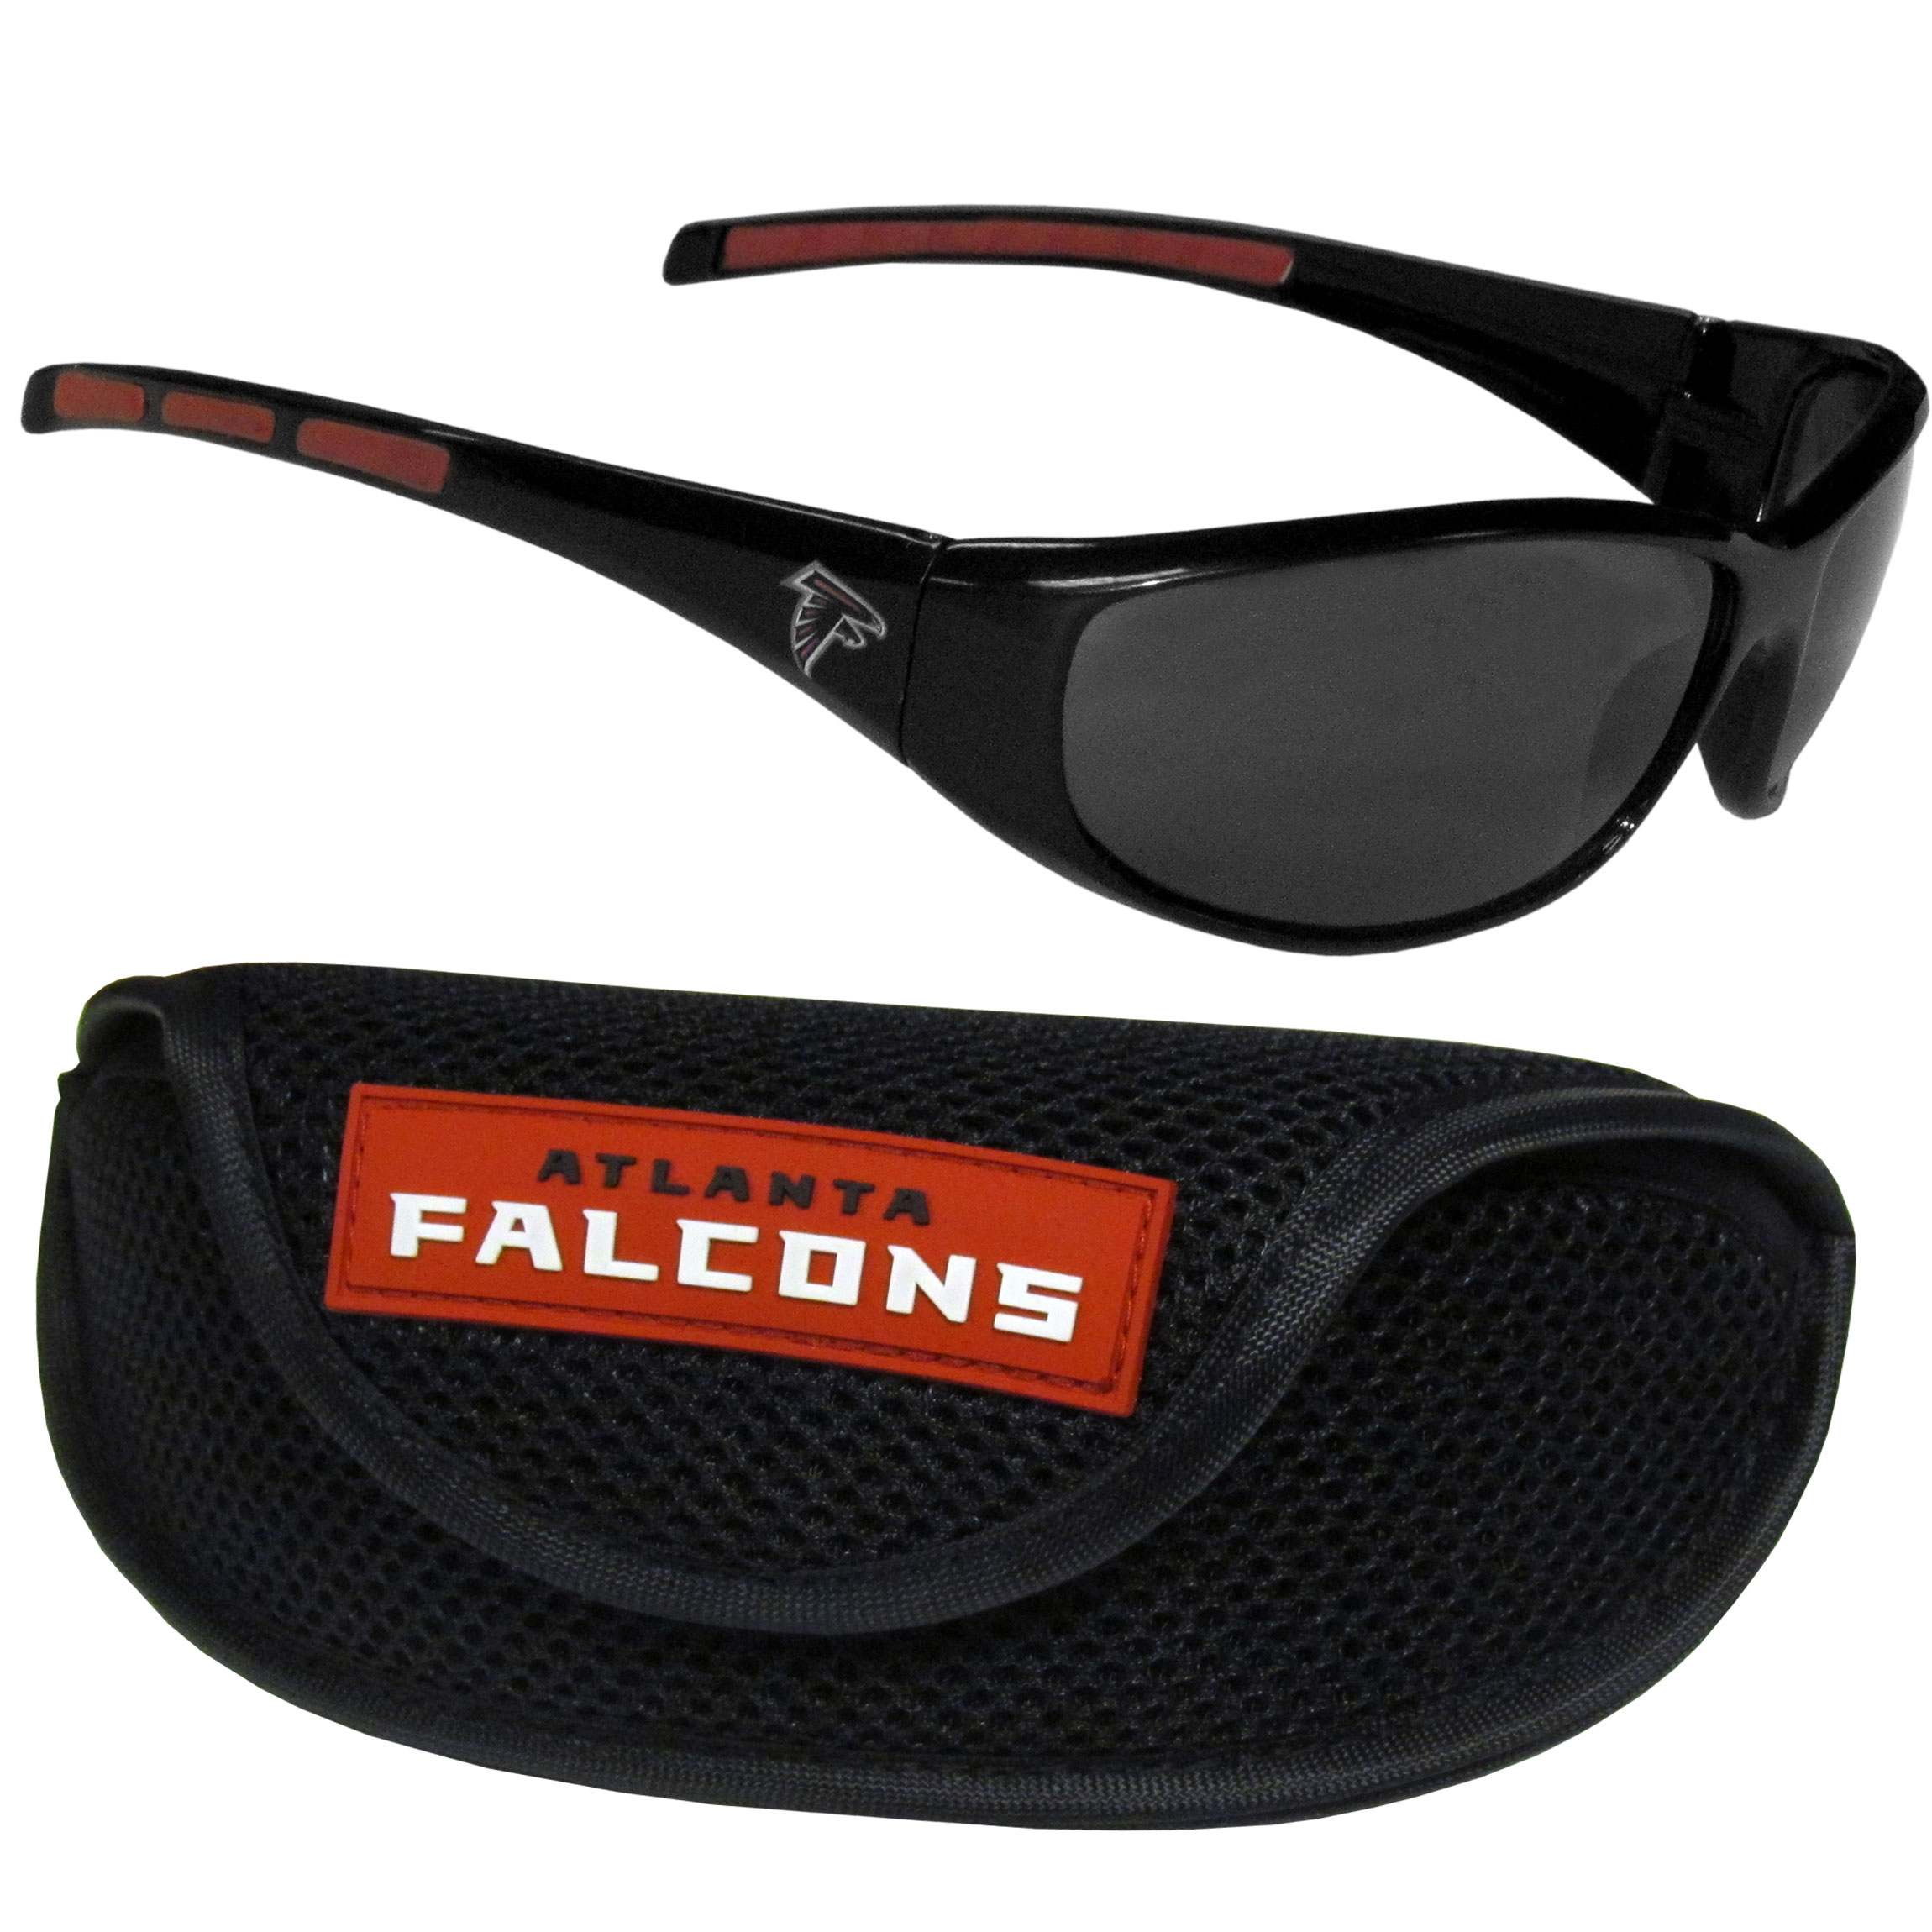 Atlanta Falcons Wrap Sunglass and Case Set - This great set includes a high quality pair of Atlanta Falcons wrap sunglasses and sport carrying case.